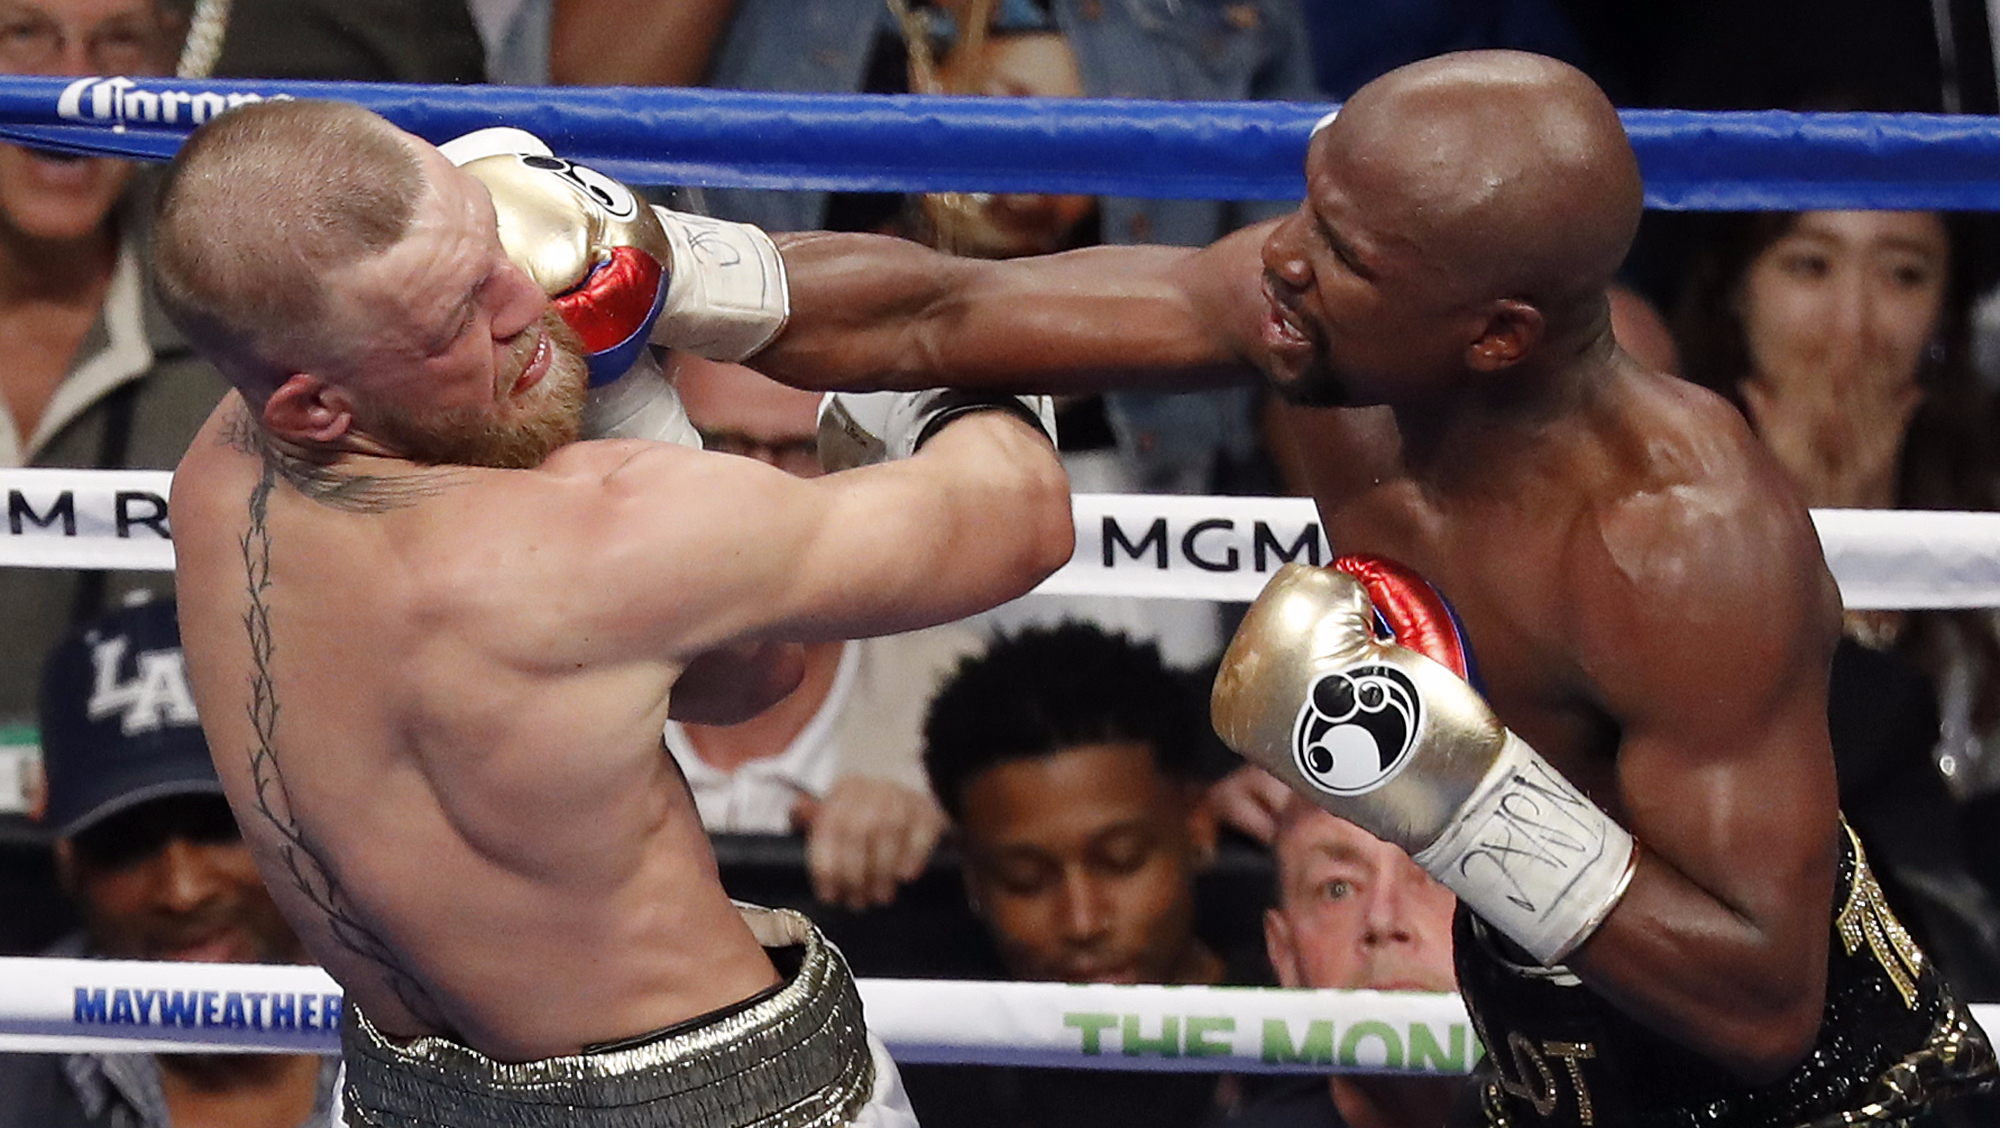 Mayweather 'Did Not Train For McGregor Fight', Says Floyd Snr